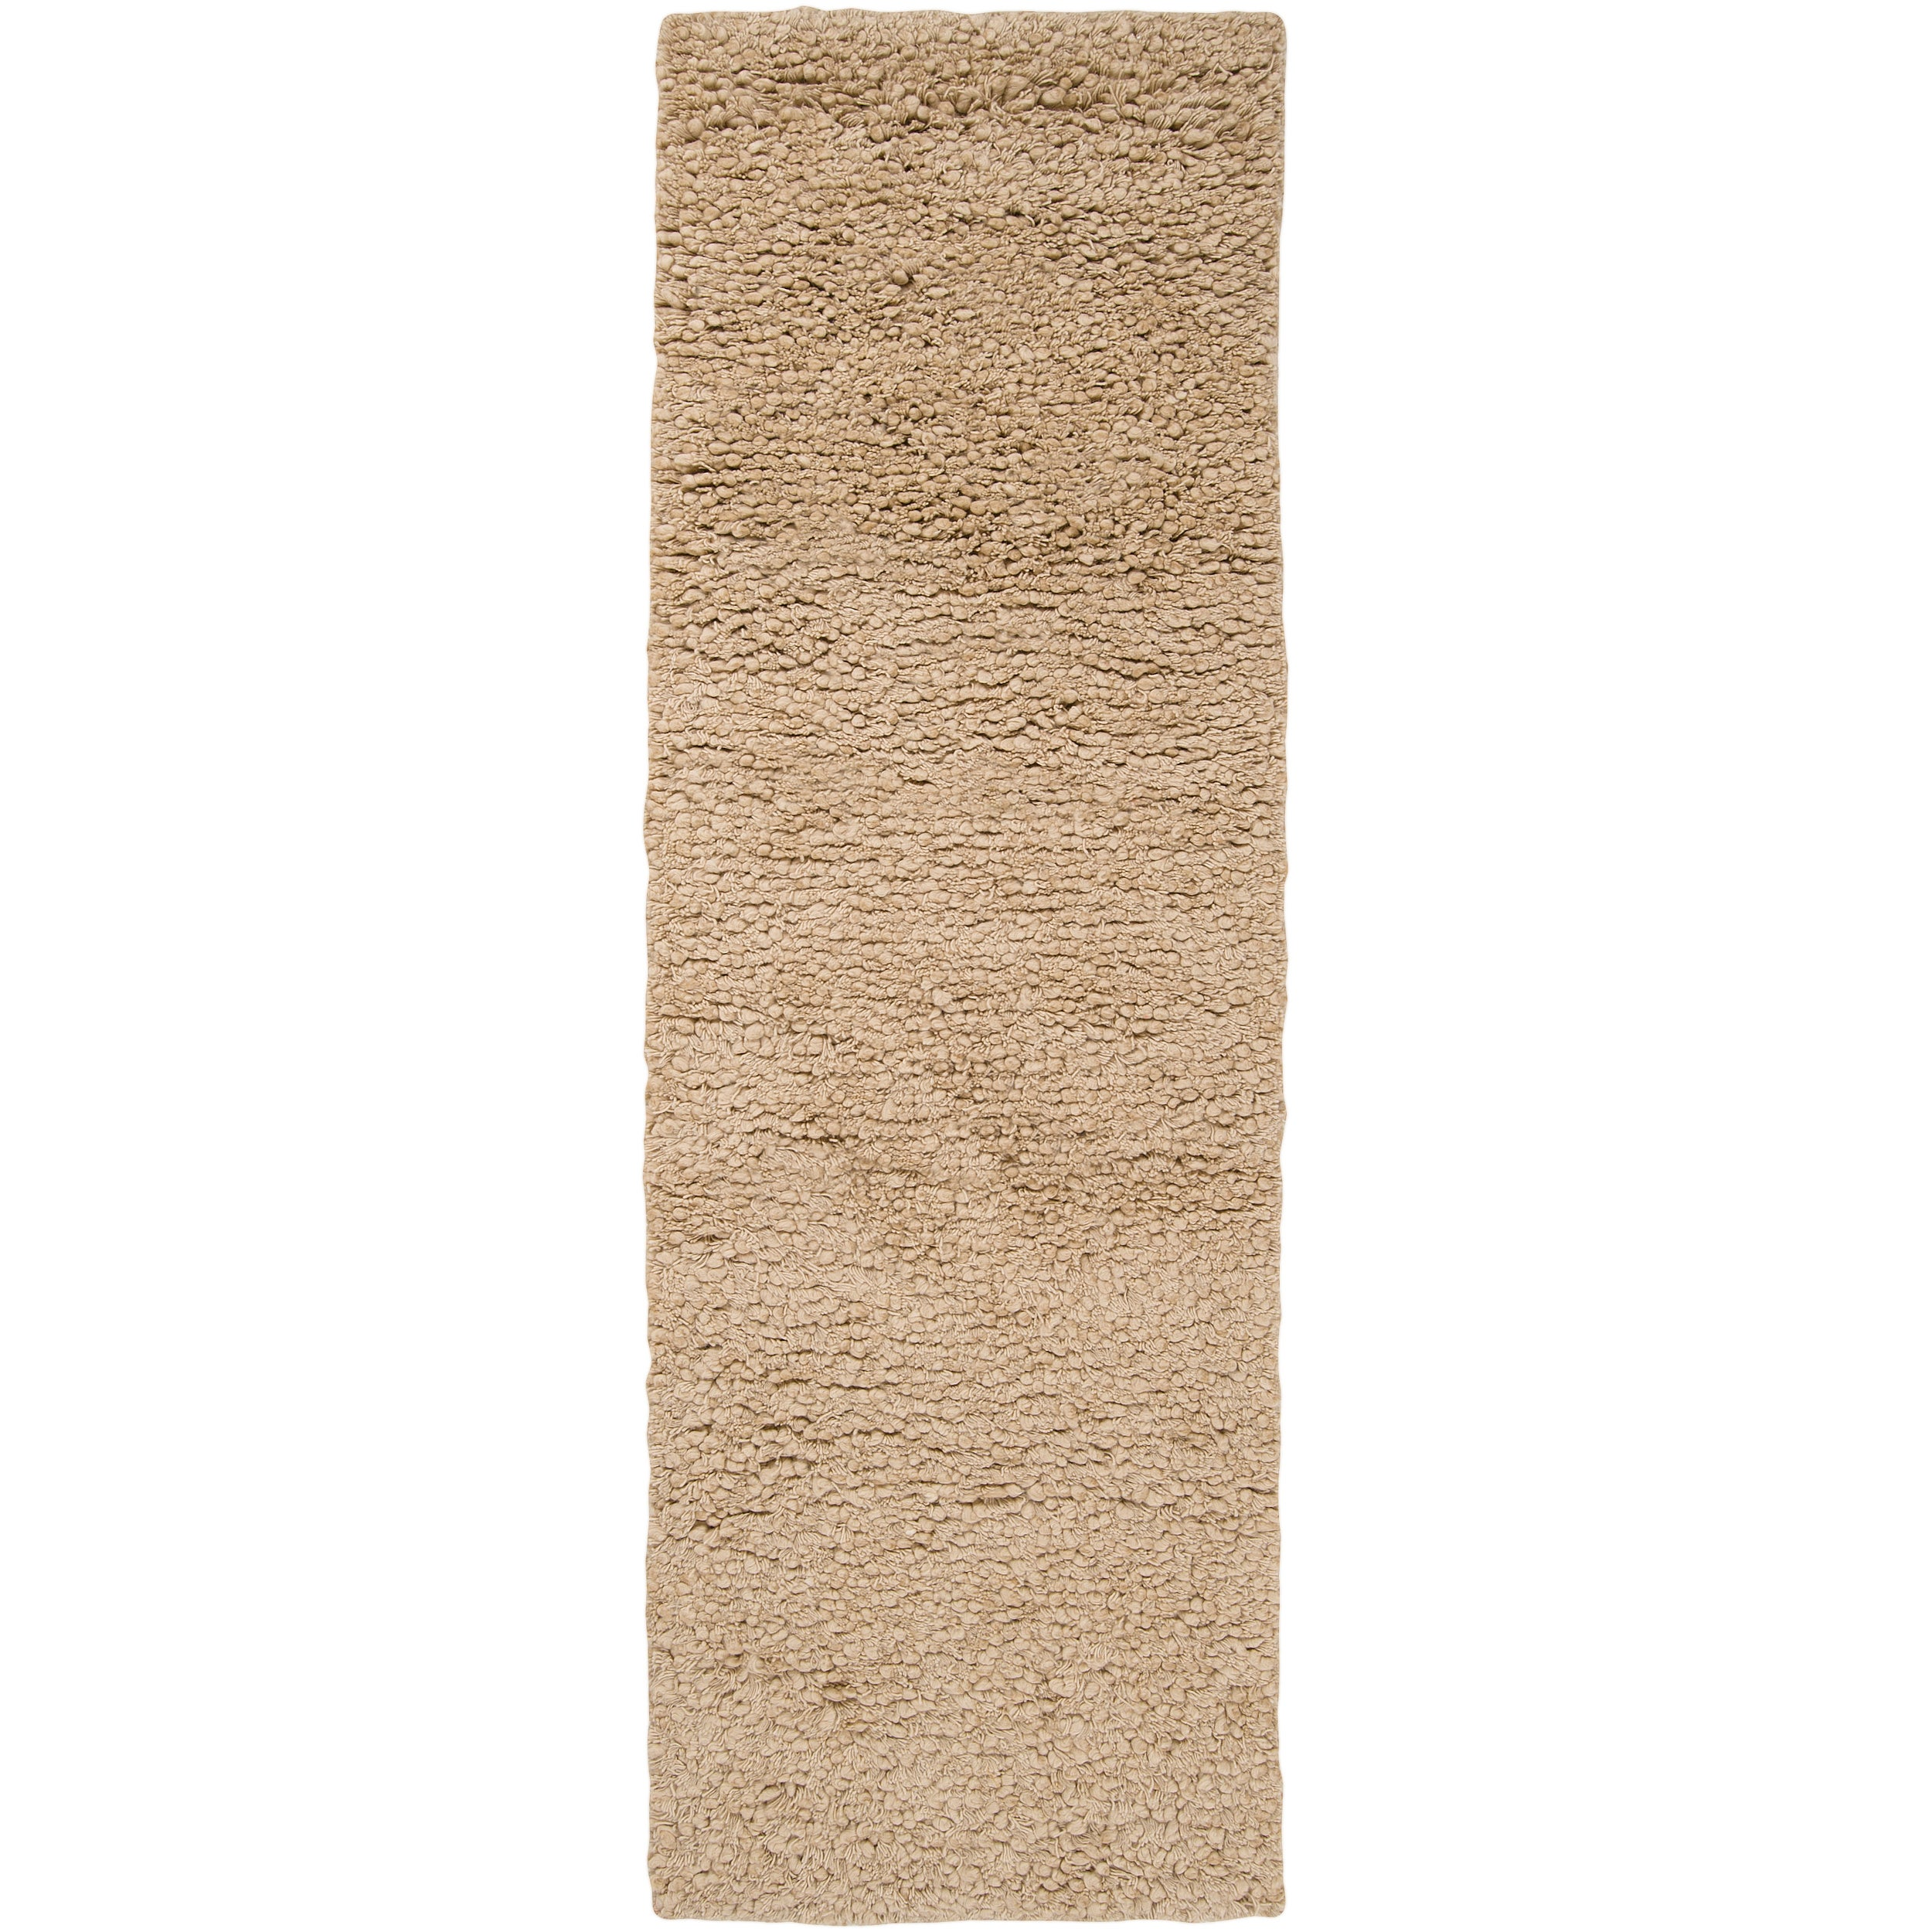 Hand-woven Beige Caucus New Zealand Wool Plush Shag Rug (2'6 x 8')